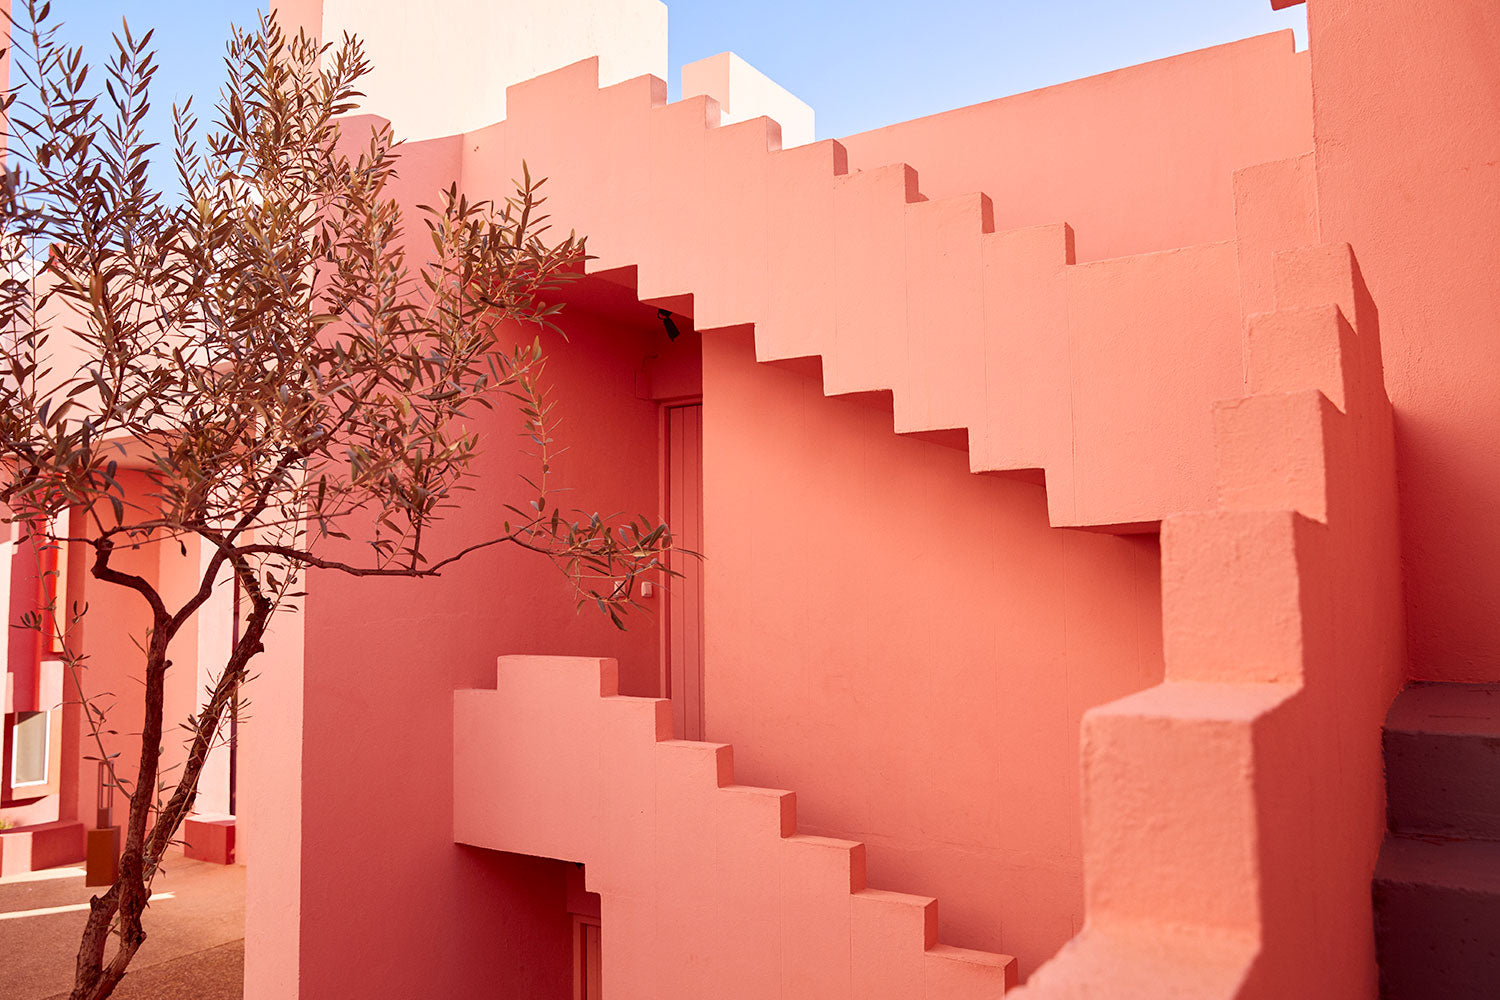 MLM LABEL WALLCANDY LA MURALLA ROJA PLACES TO GO